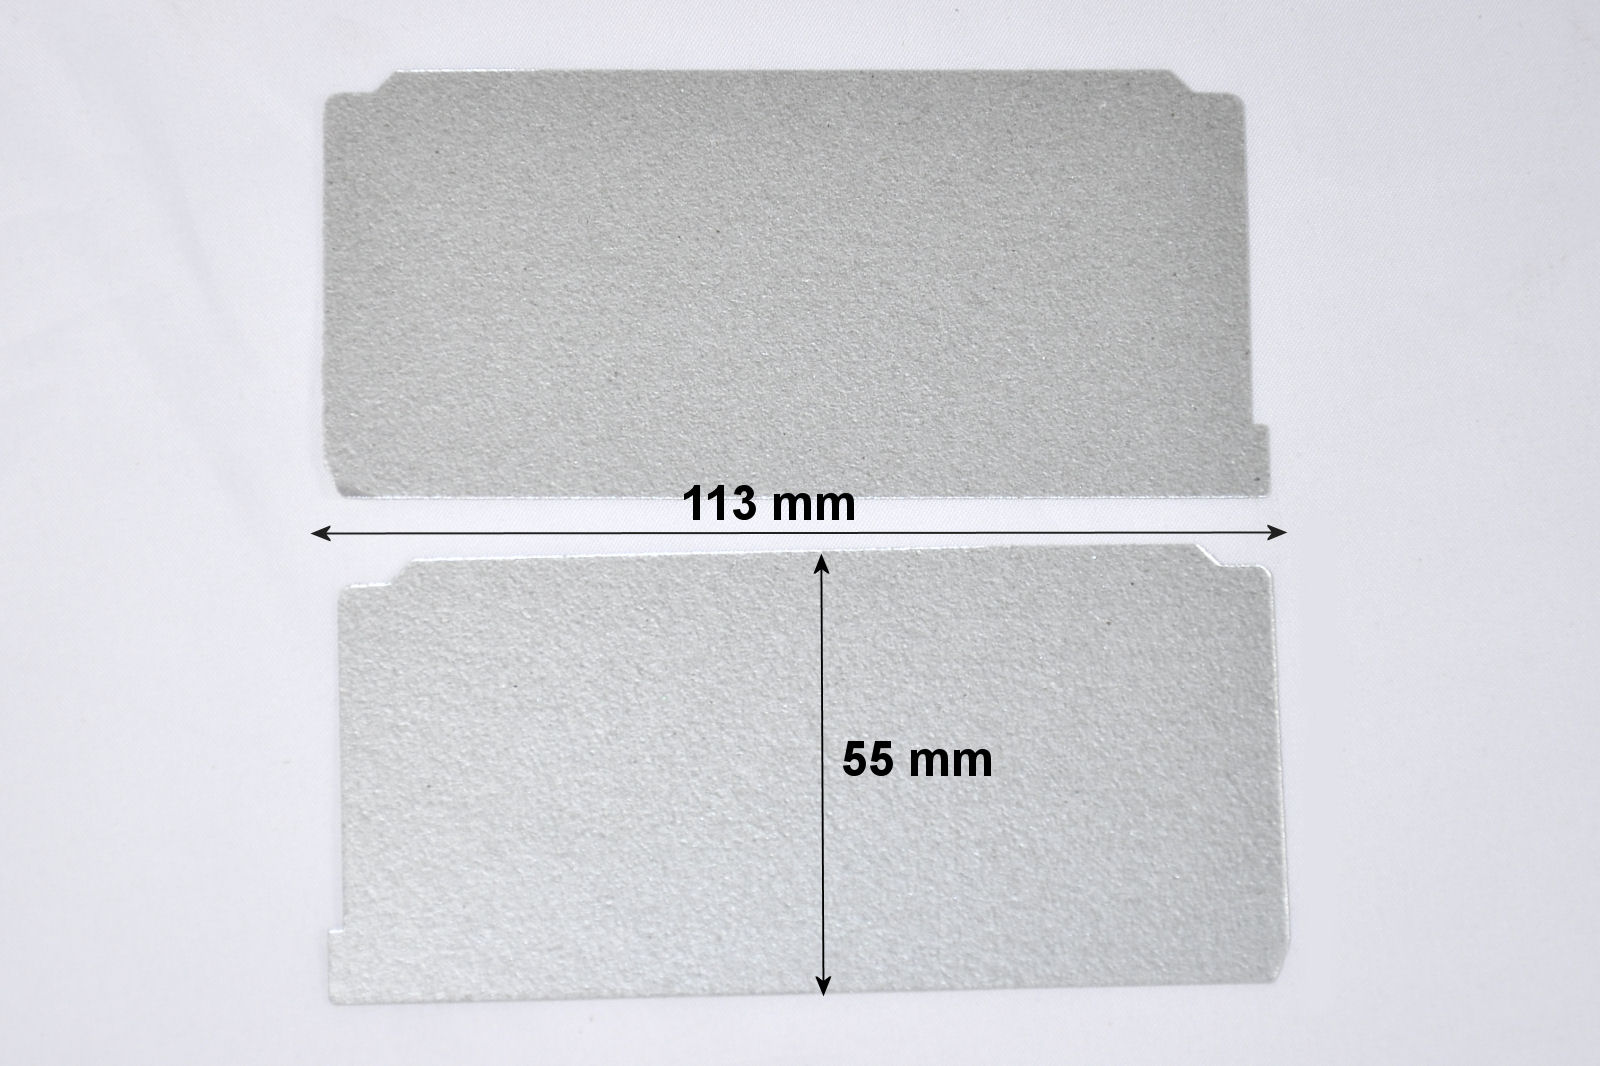 Pack of 2 Waveguide Covers for Panasonic microwave ovens - Z20559V00XP